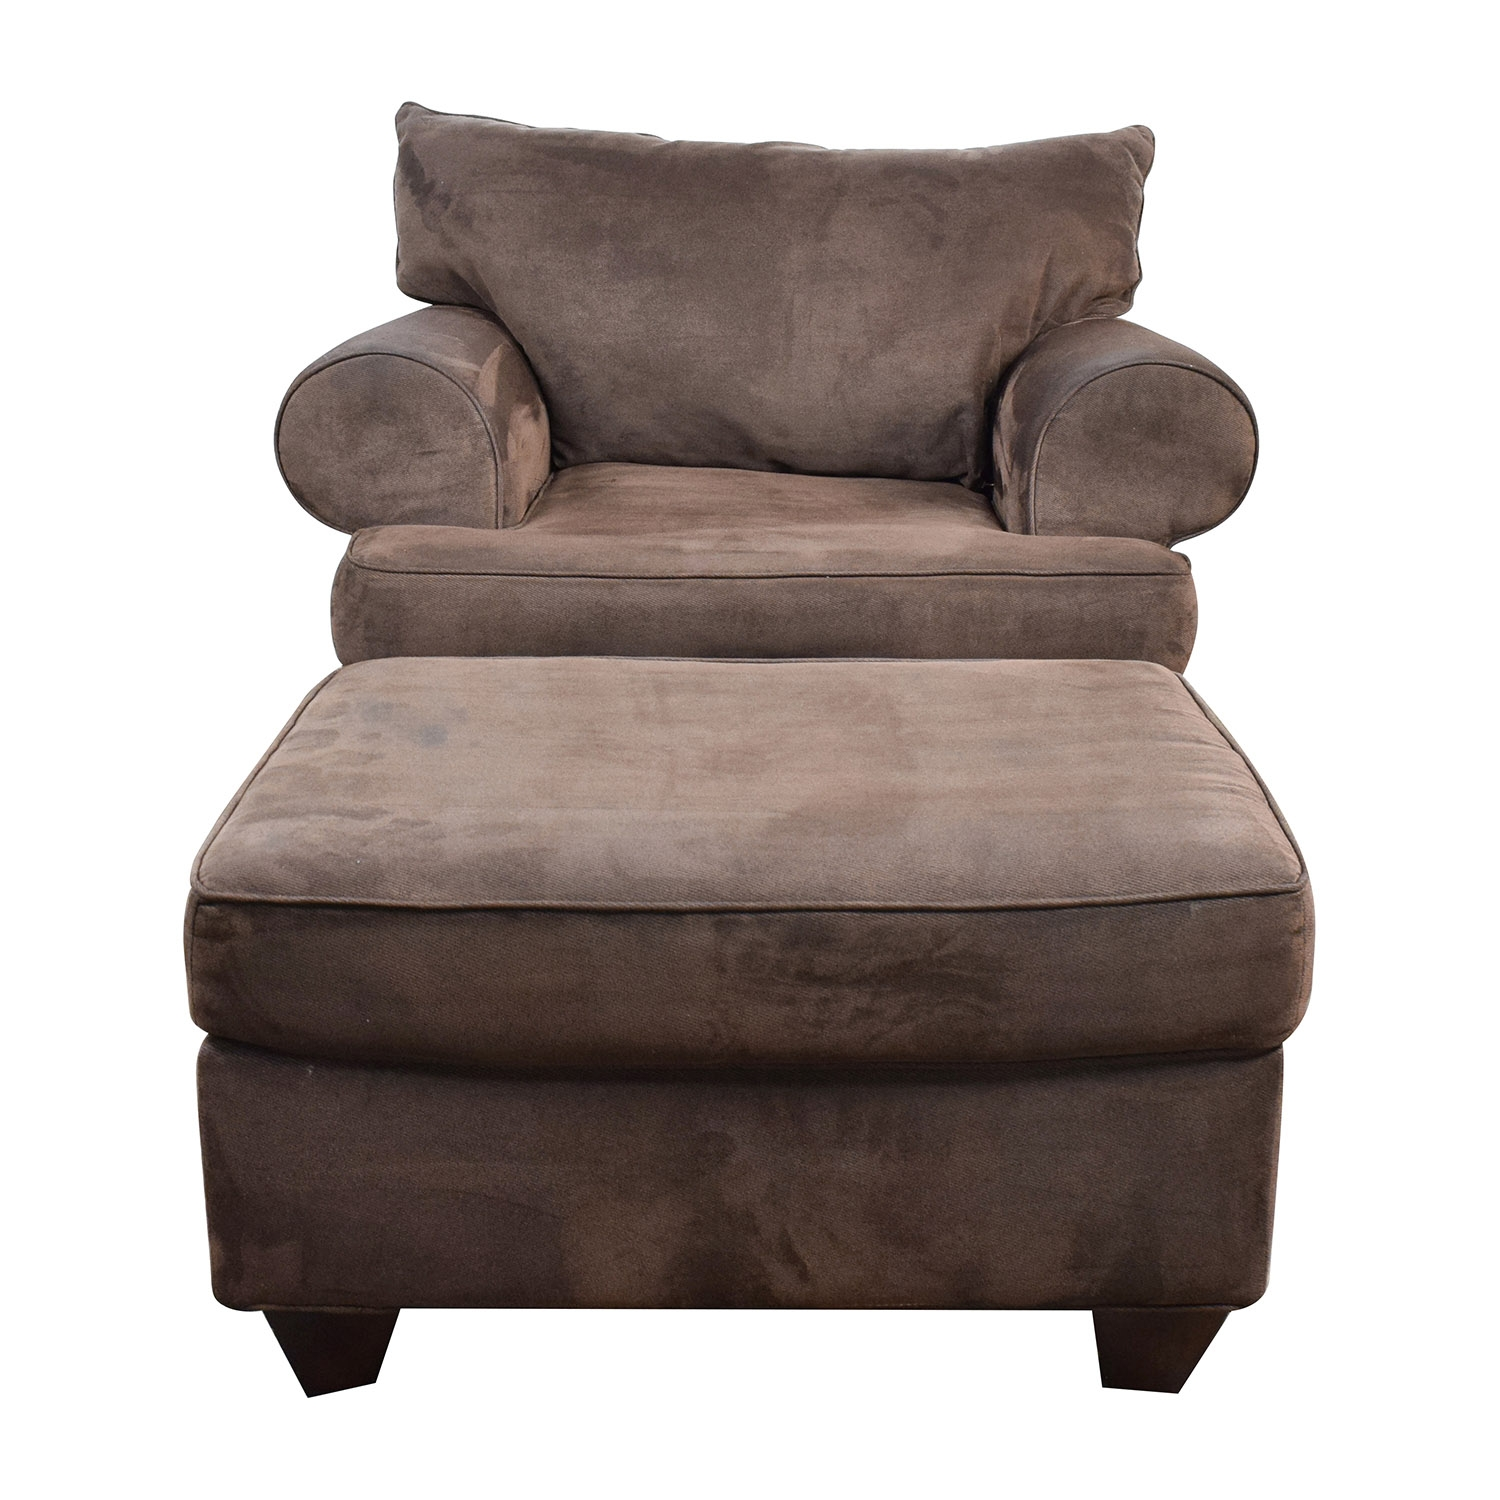 67 Off Dark Brown Sofa Chair With Ottoman Chairs For Brown Sofa Chairs (Image 4 of 15)